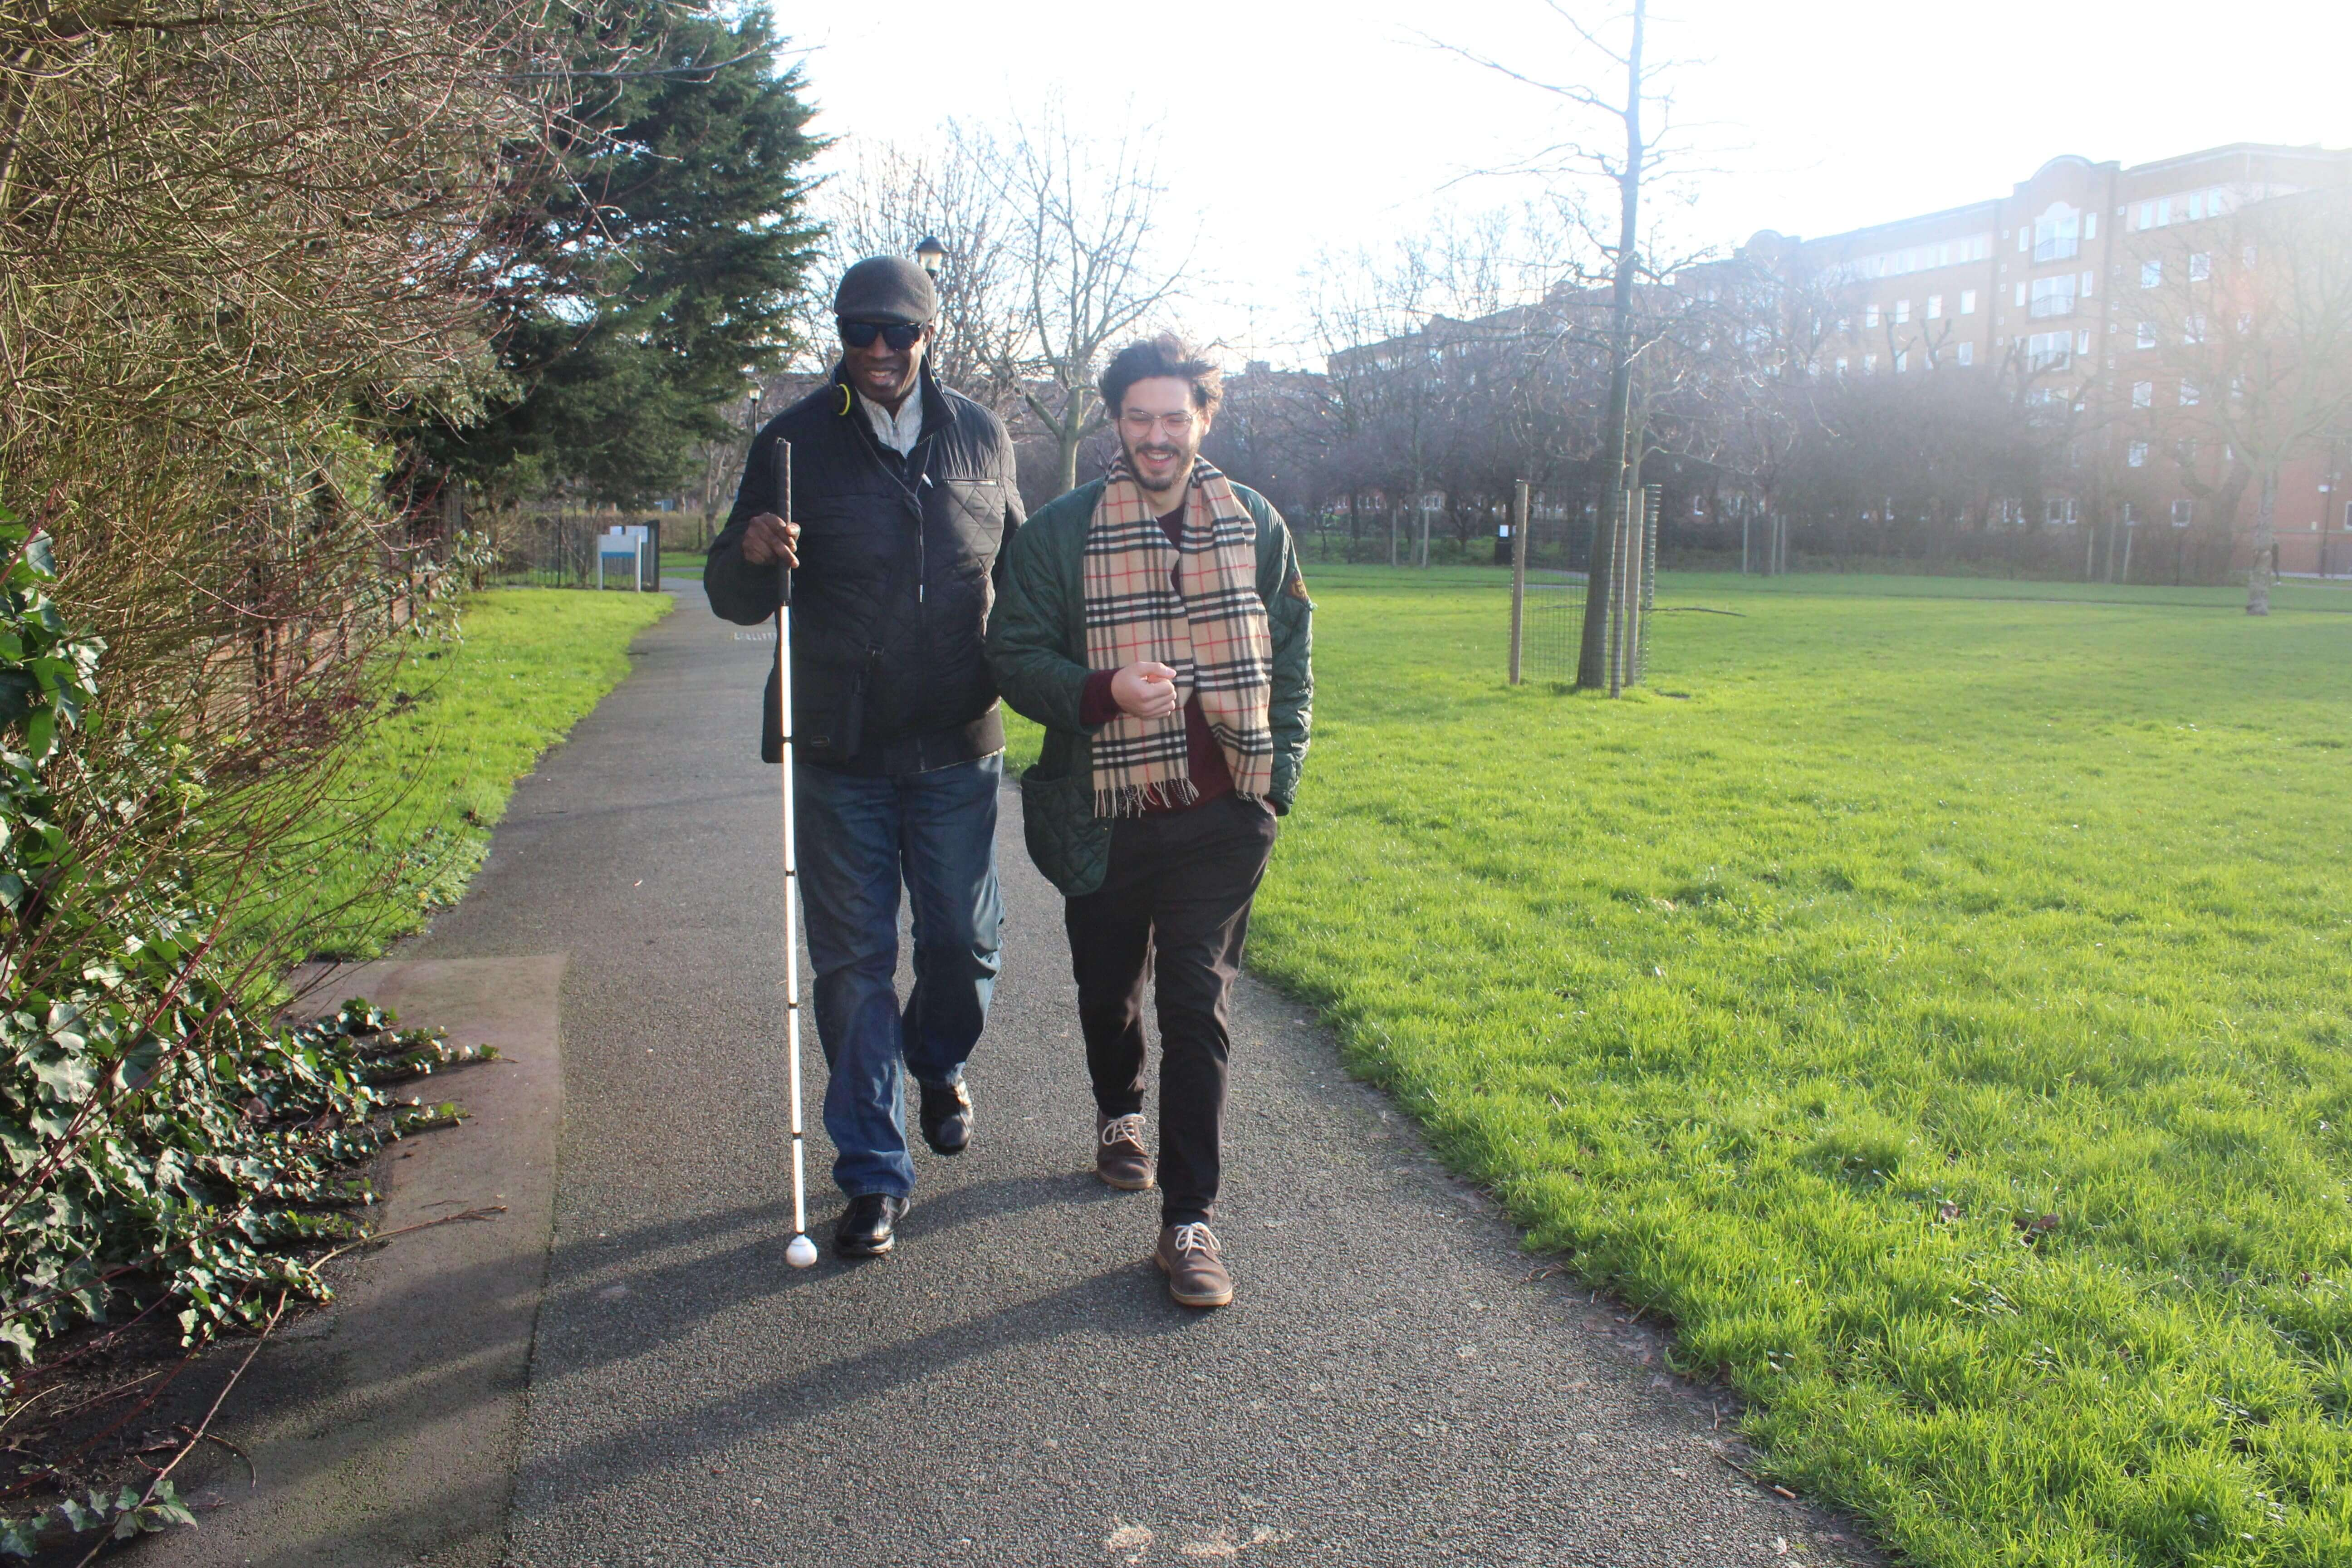 Visually impaired person walks with a volunteer